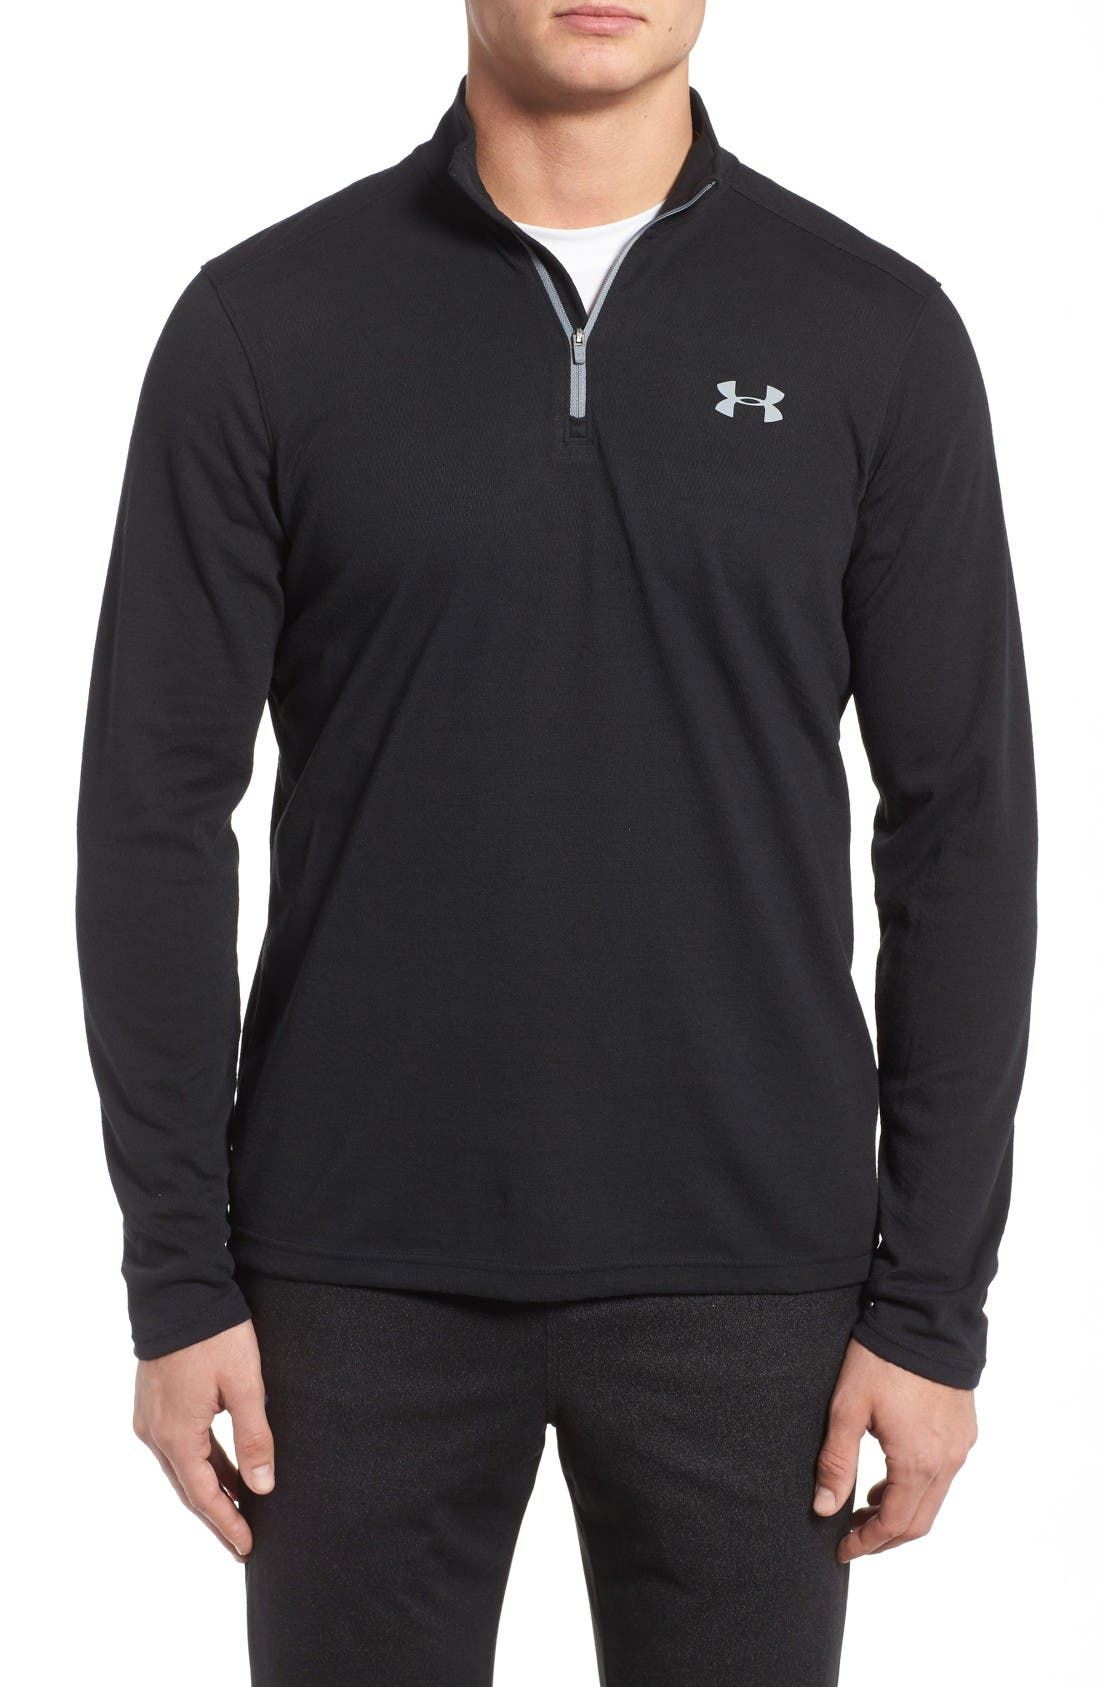 Alternate Image 1 Selected - Under Armour ColdGear® Quarter-Zip Pullover